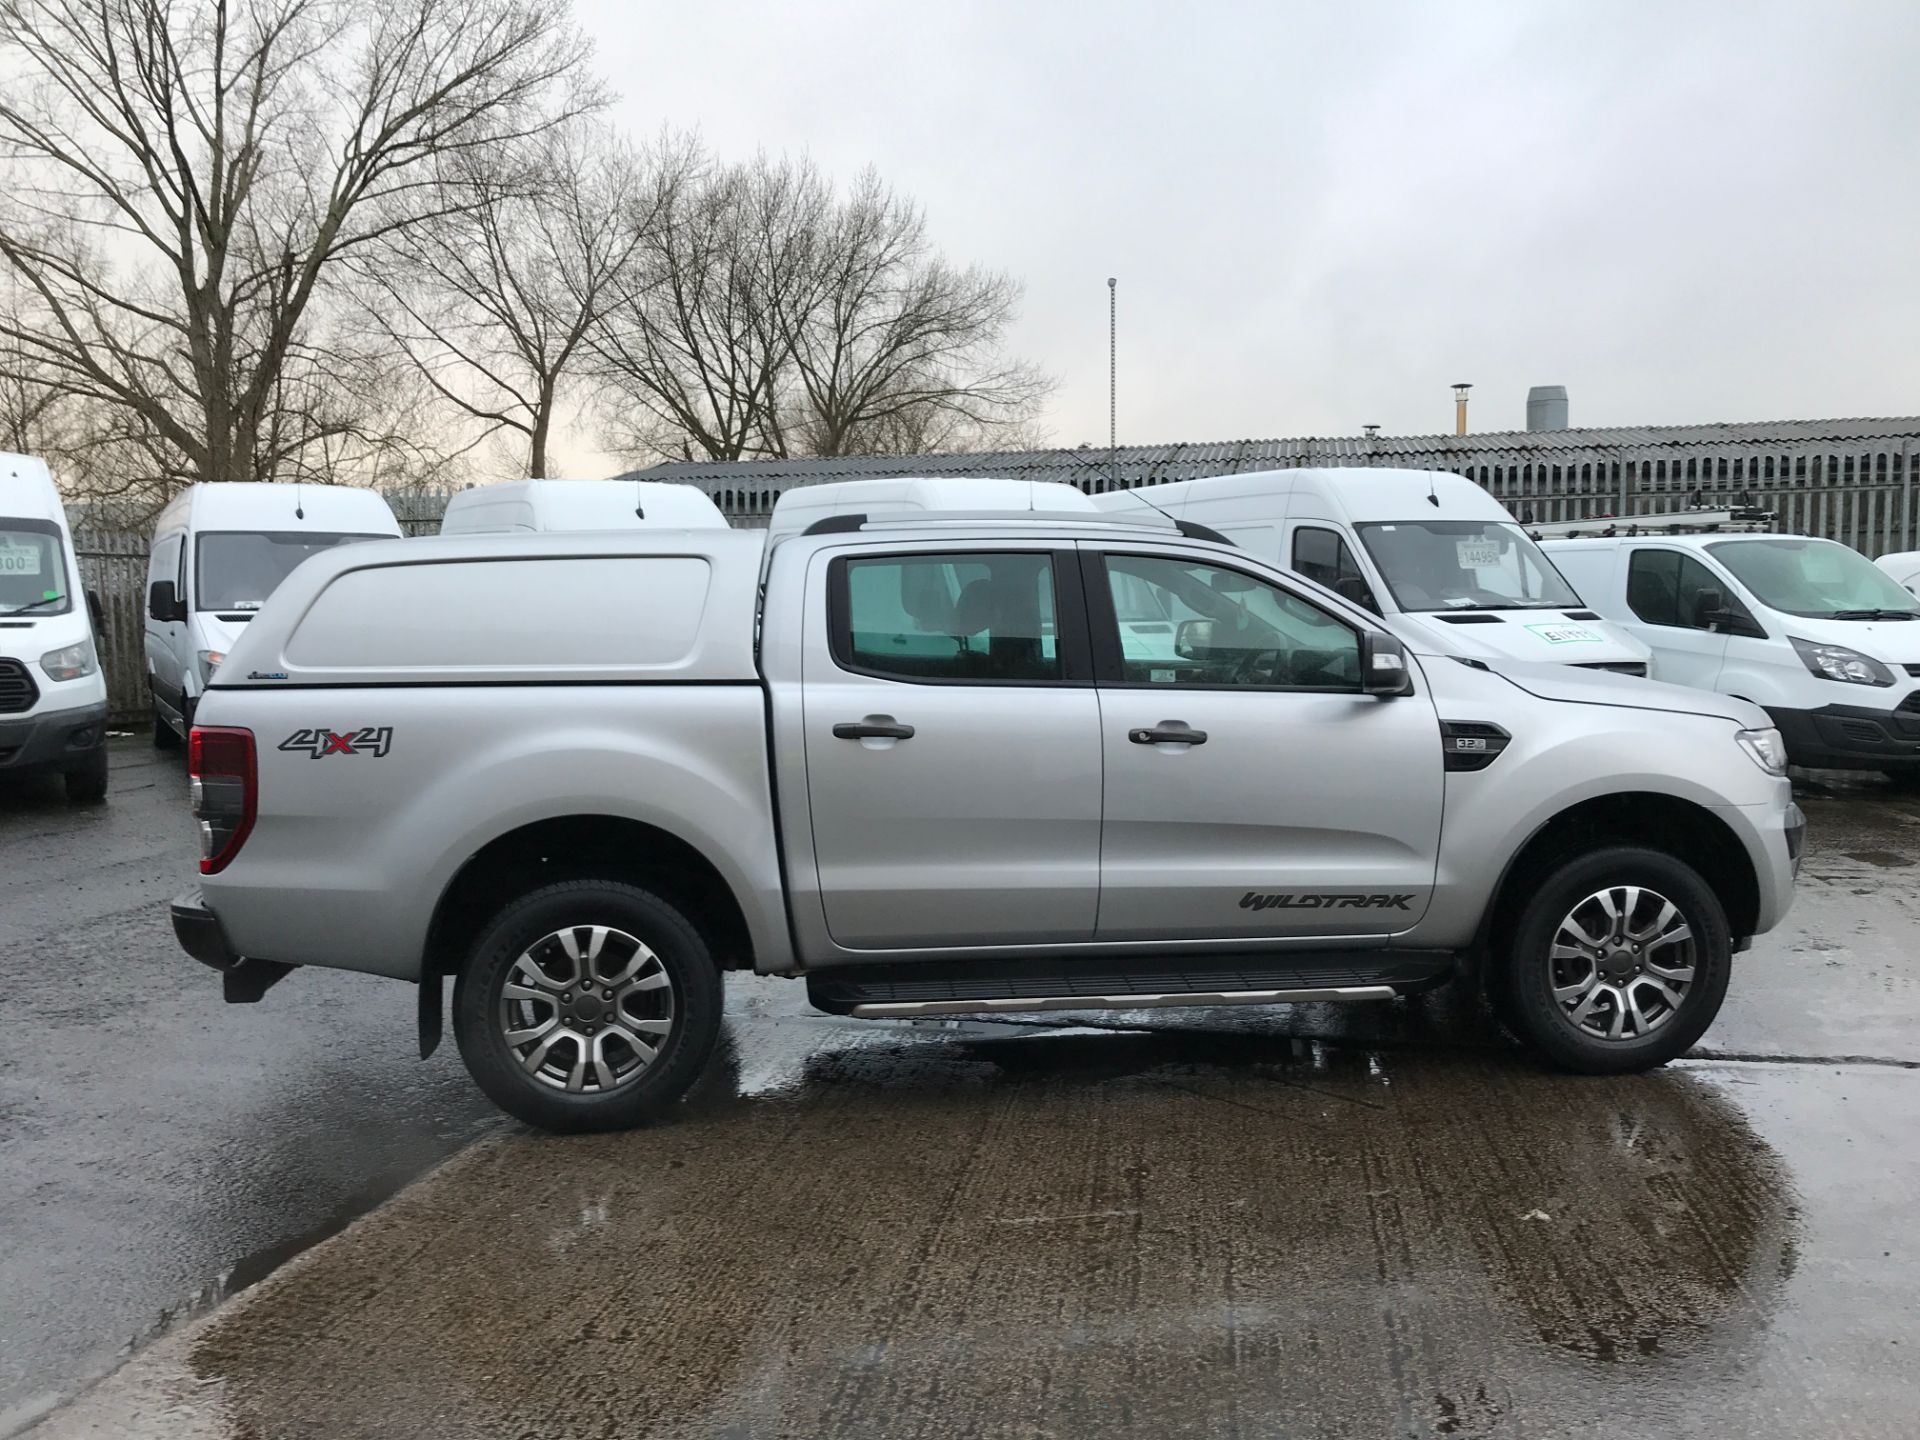 2018 Ford Ranger DOUBLE CAB 4X4 WILDTRAK 3.2TDI 200PS EURO 5 (FE18JPO) Thumbnail 7